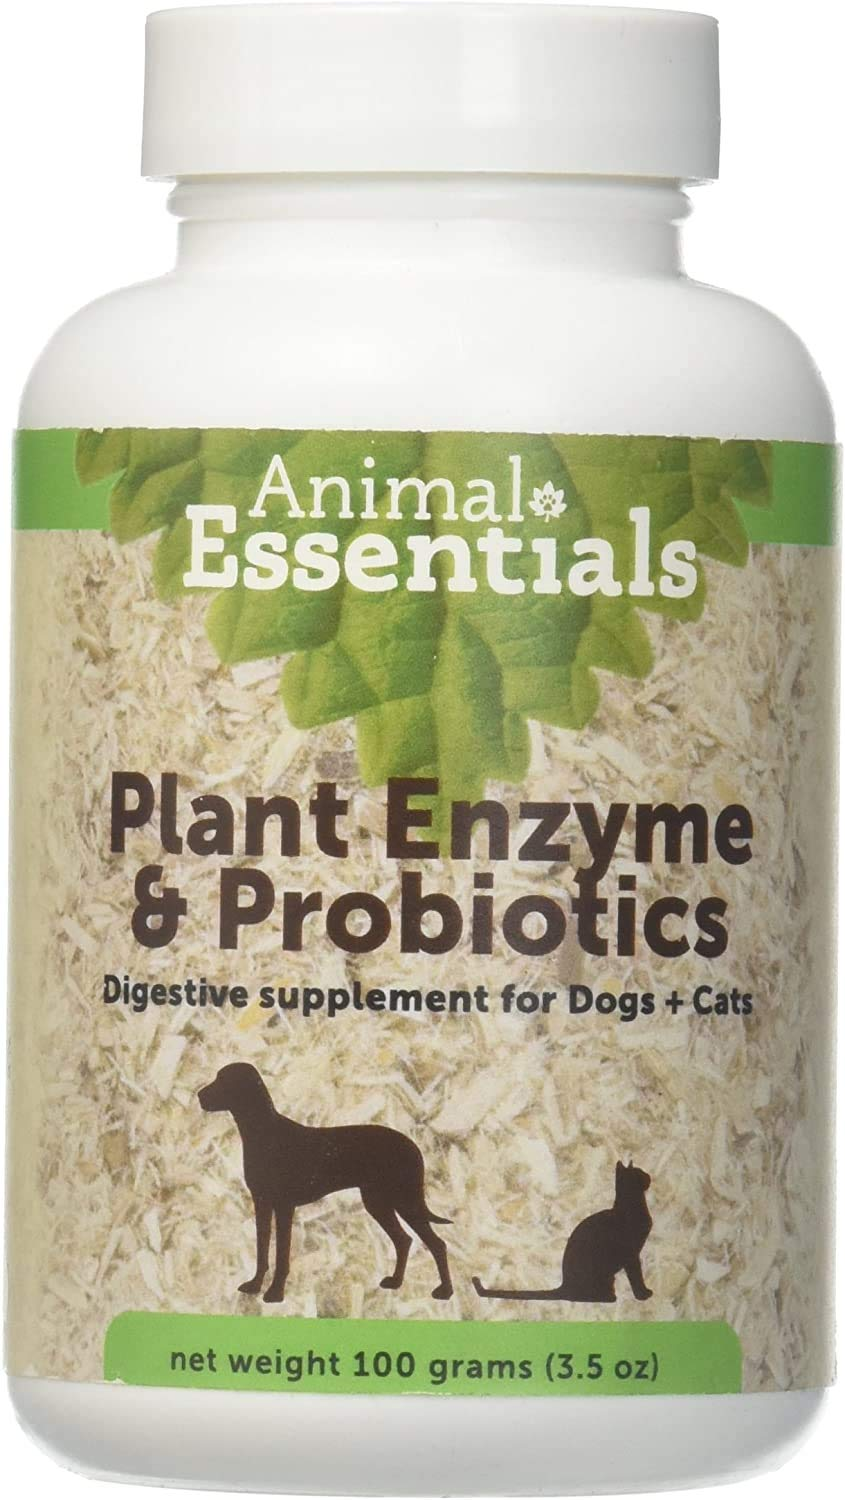 Animal Essentials Plant Enzyme & Probiotics Digestive Supplement for Dogs & Cats (Various Sizes) - Digestion Support